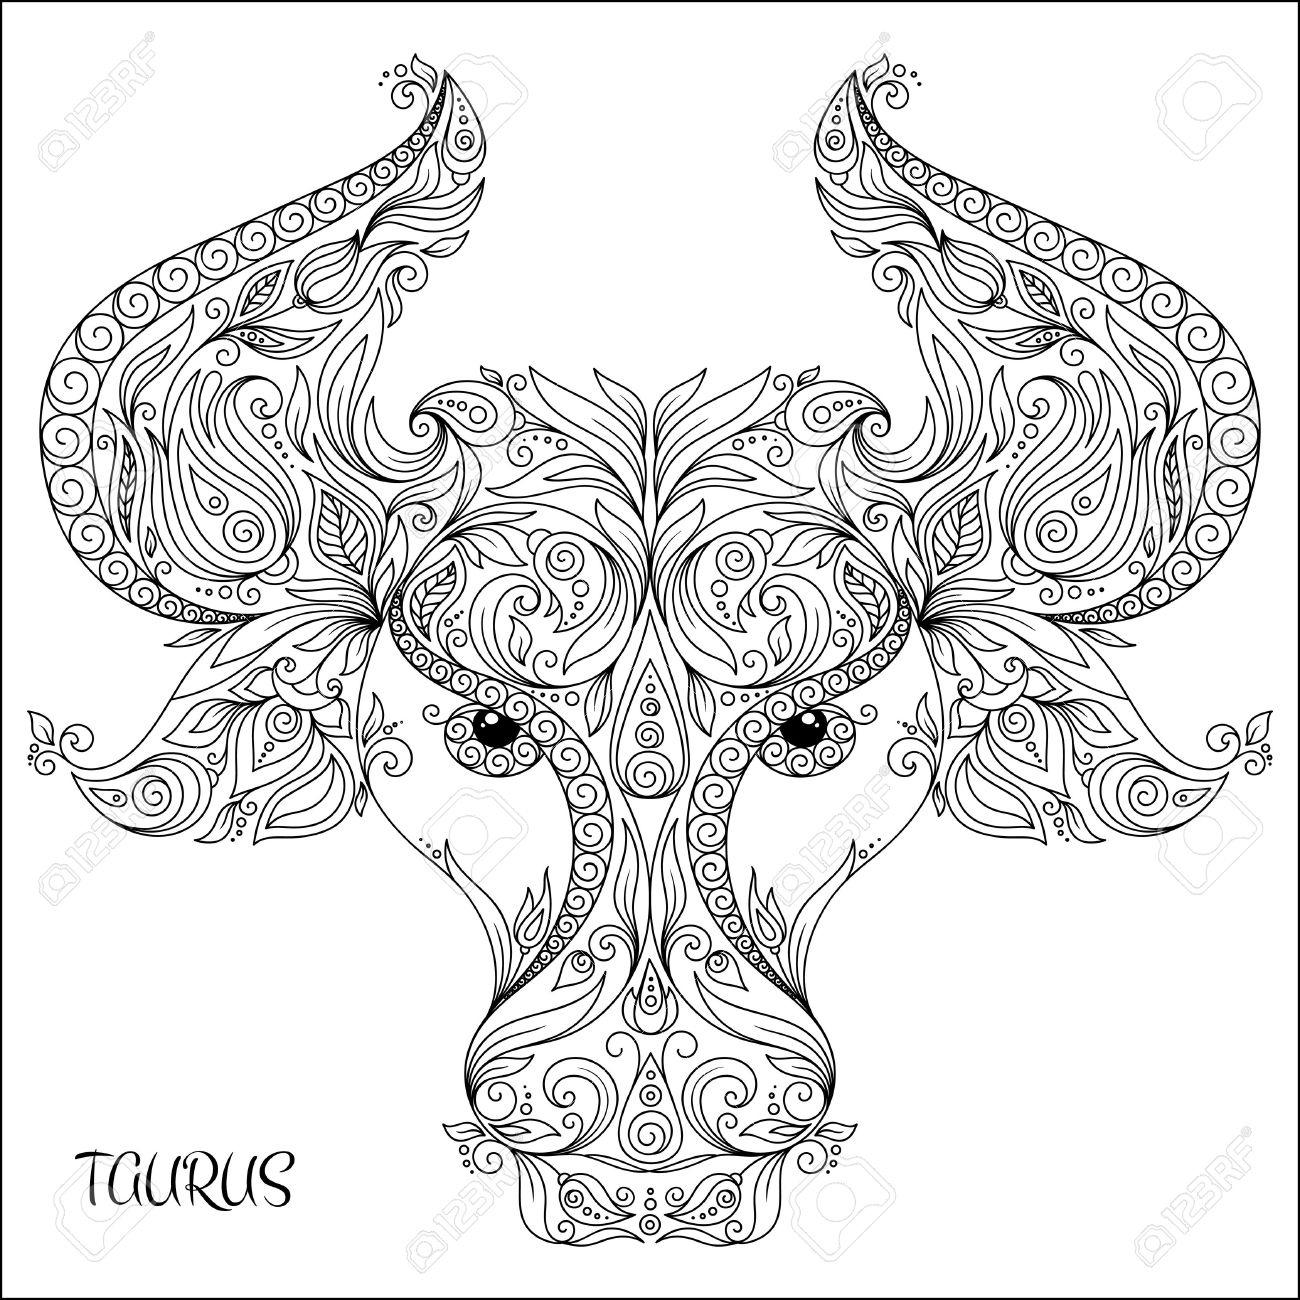 Pattern for coloring book. Hand drawn line flowers art of zodiac Taurus. Horoscope symbol for your use. For tattoo art, coloring books set. - 49172360